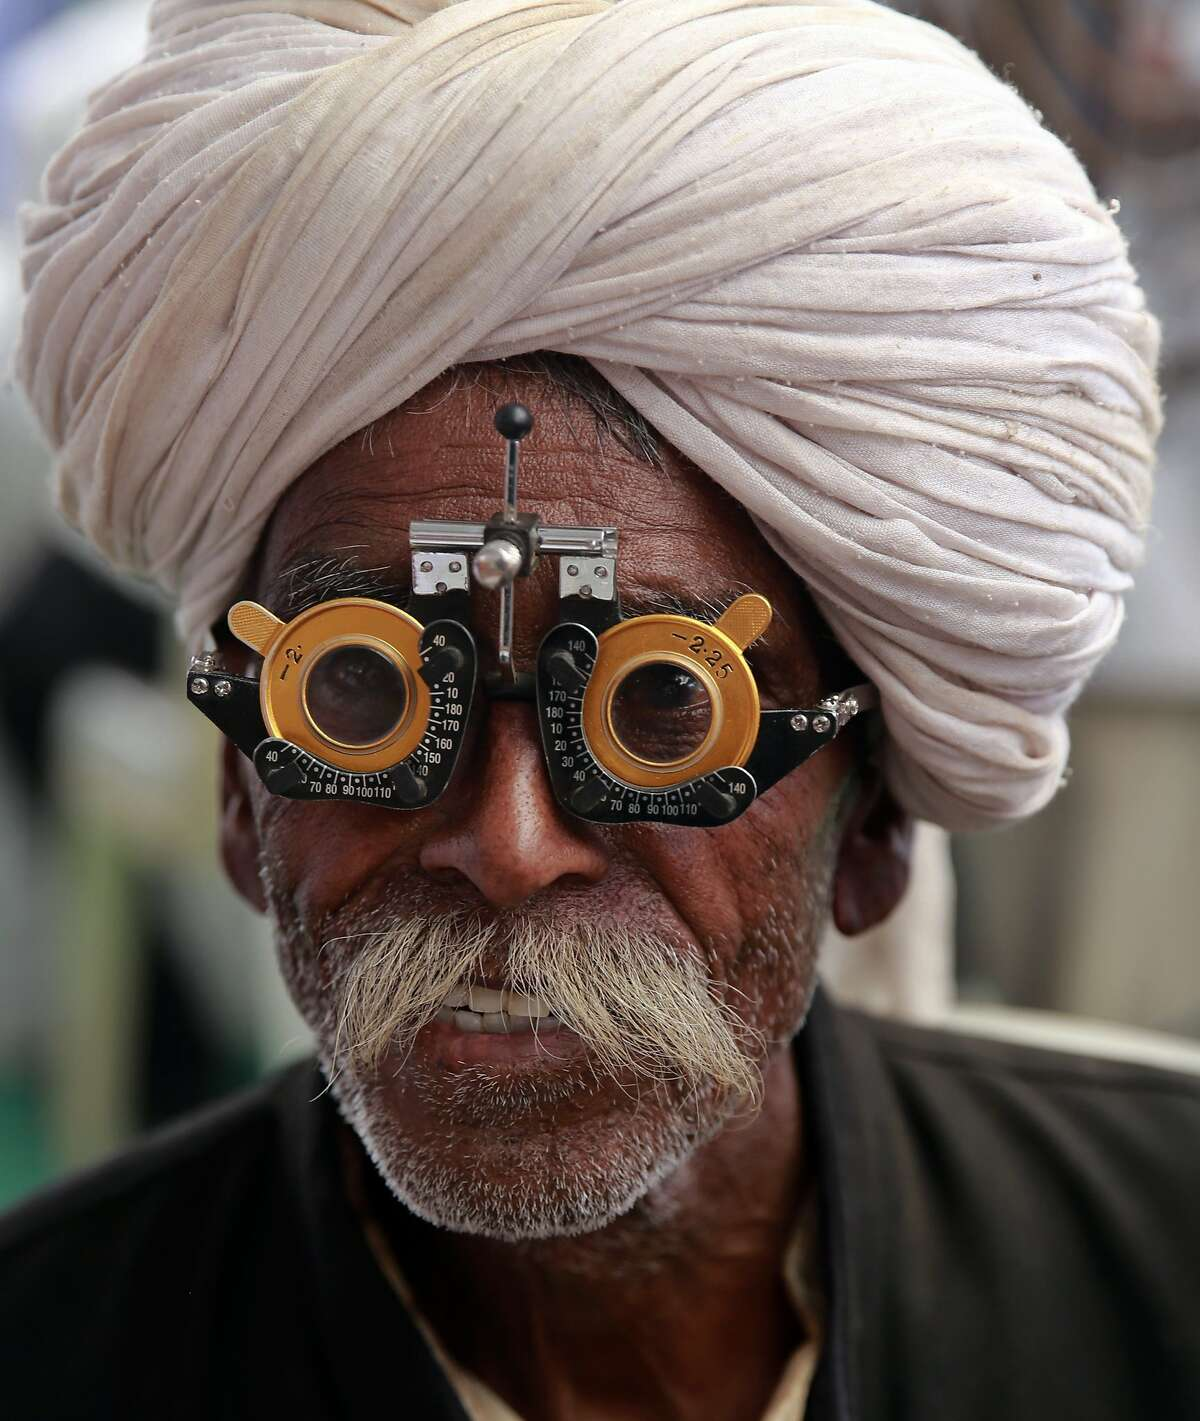 YOU SHOULD HAVE YOUR EYES EXAMINED: An Indian man gets his vision checked at a free medical camp marking the death anniversary of Bhim Rao Ambedkar in Mumbai. Ambedkar, an untouchable, or dalit, and a prominent Indian freedom fighter, was the chief architect of the Indian constitution, which outlawed discrimination based on caste.